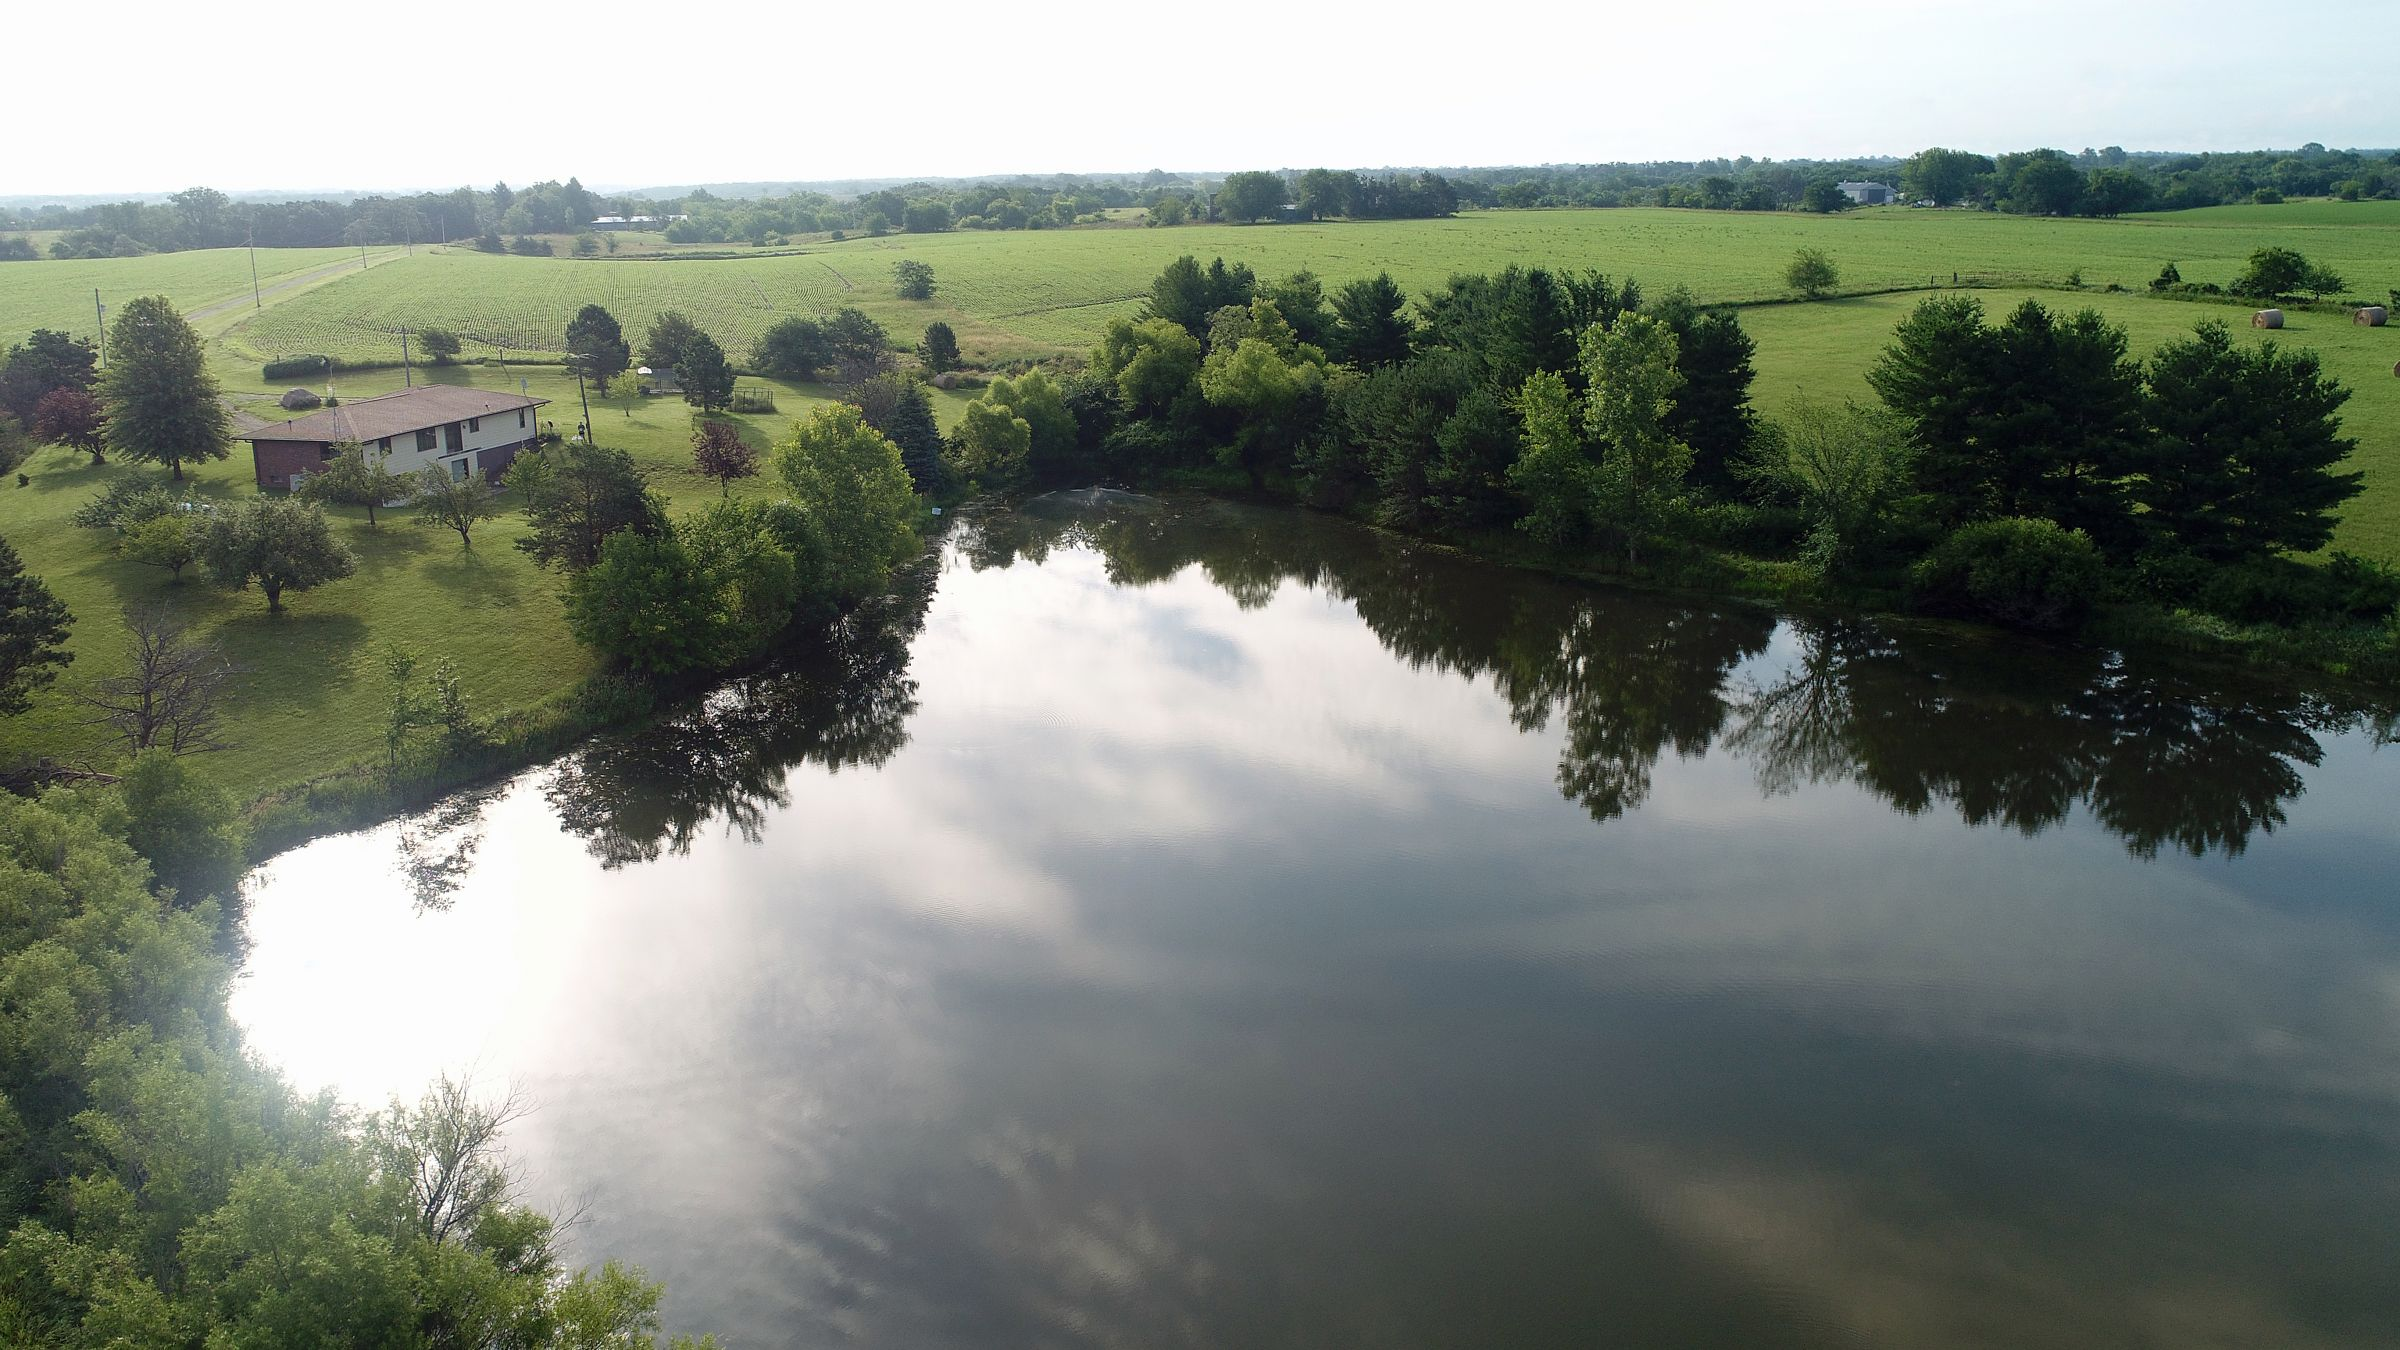 residential-lucas-county-iowa-9-acres-listing-number-15618-2-2021-06-30-170827.JPG